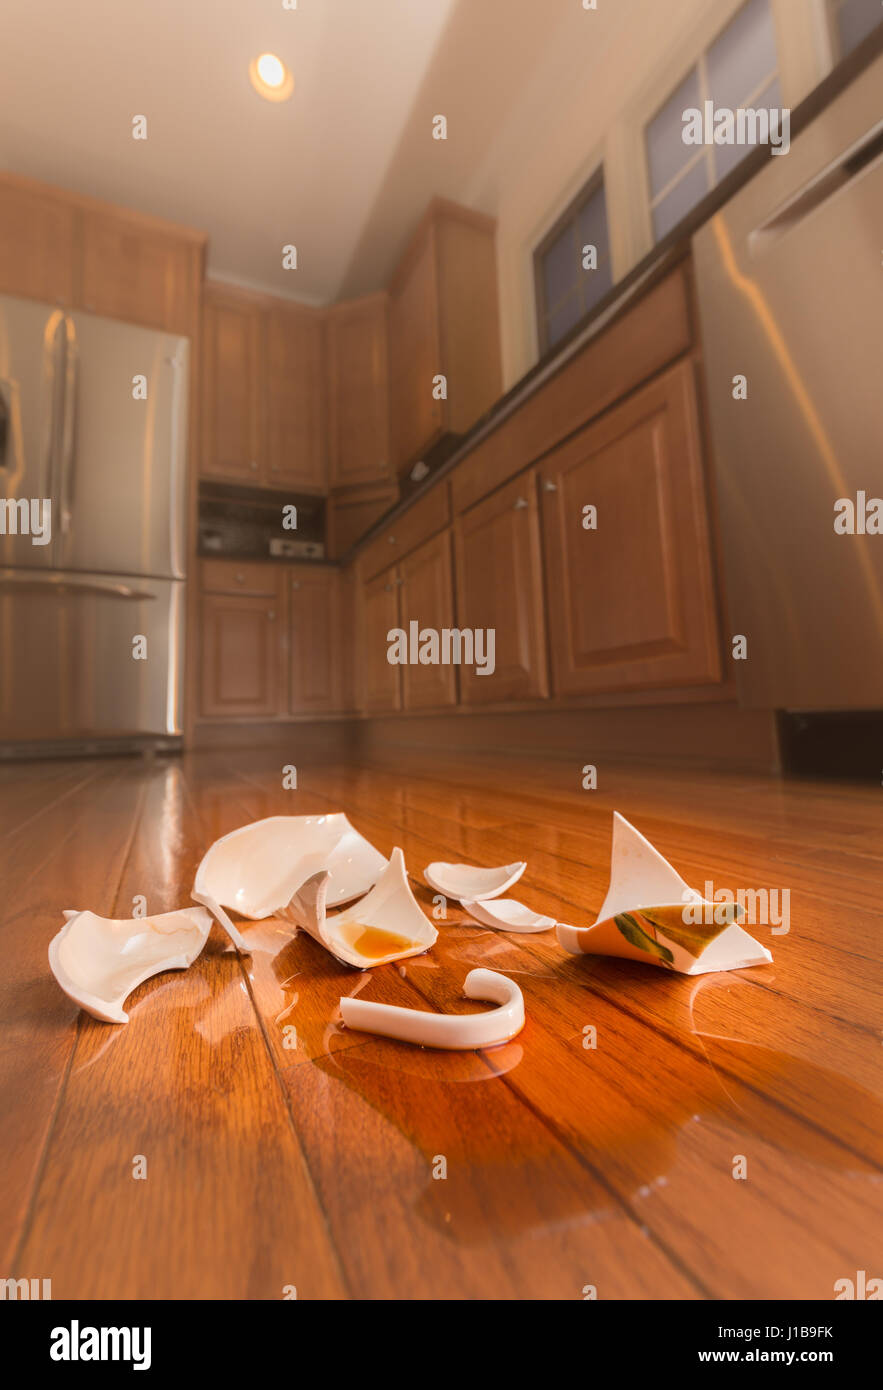 Broken coffee cup on floor of modern kitchen - domestic violence concept - Stock Image